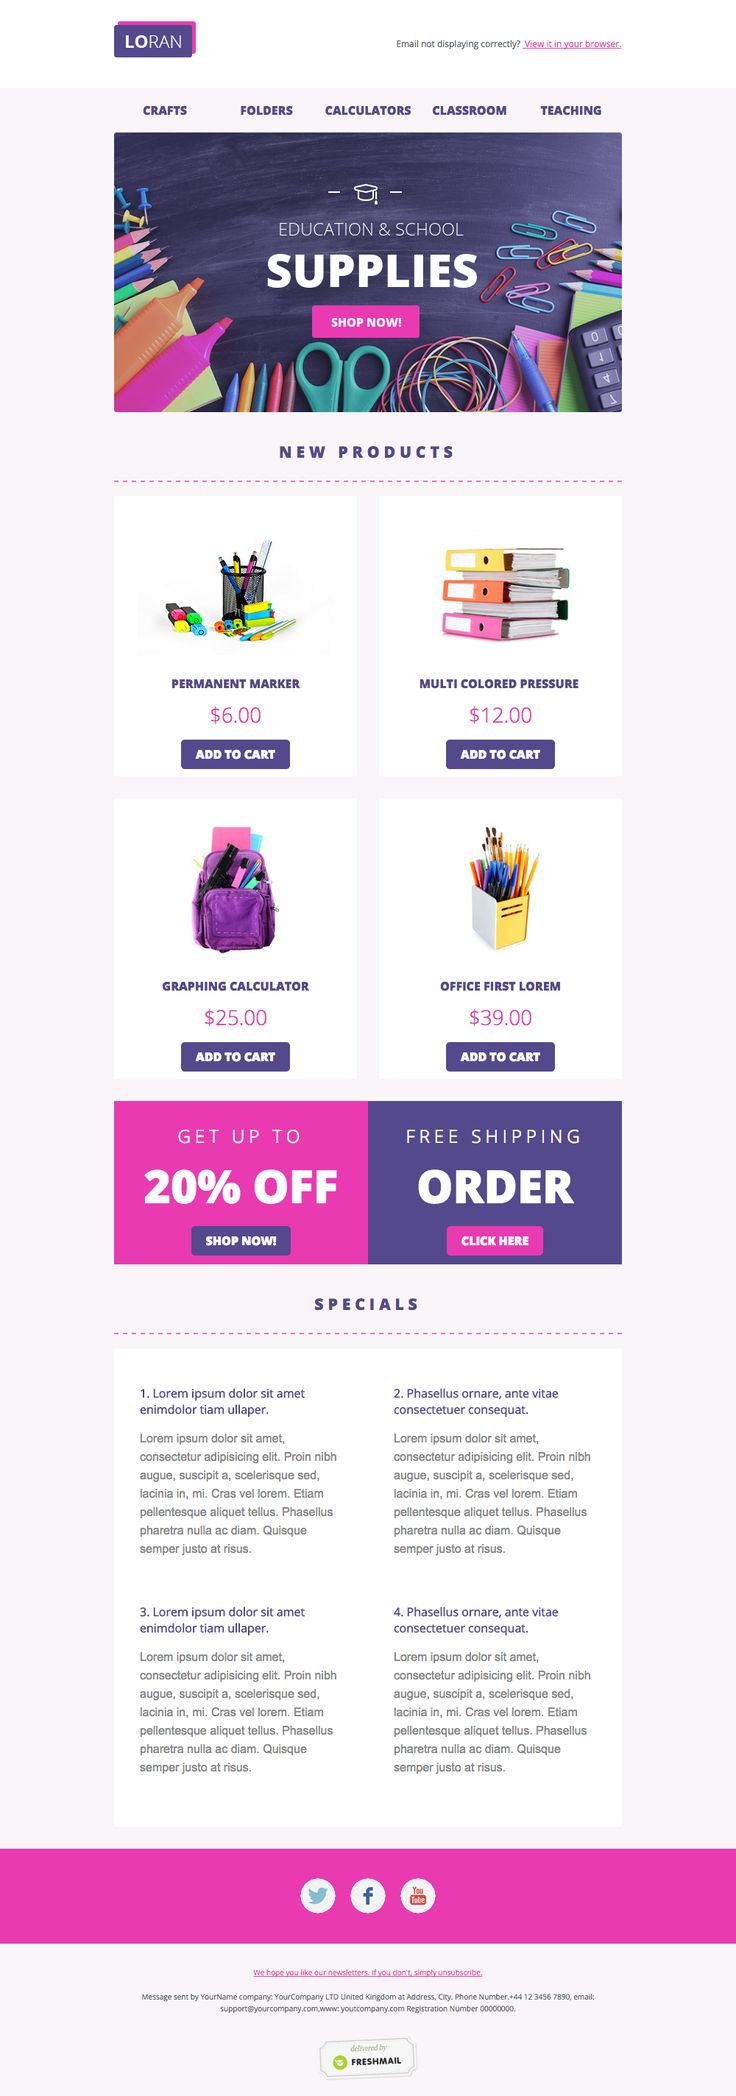 office depot e commerce newsletter design ideas examples for your inspiration